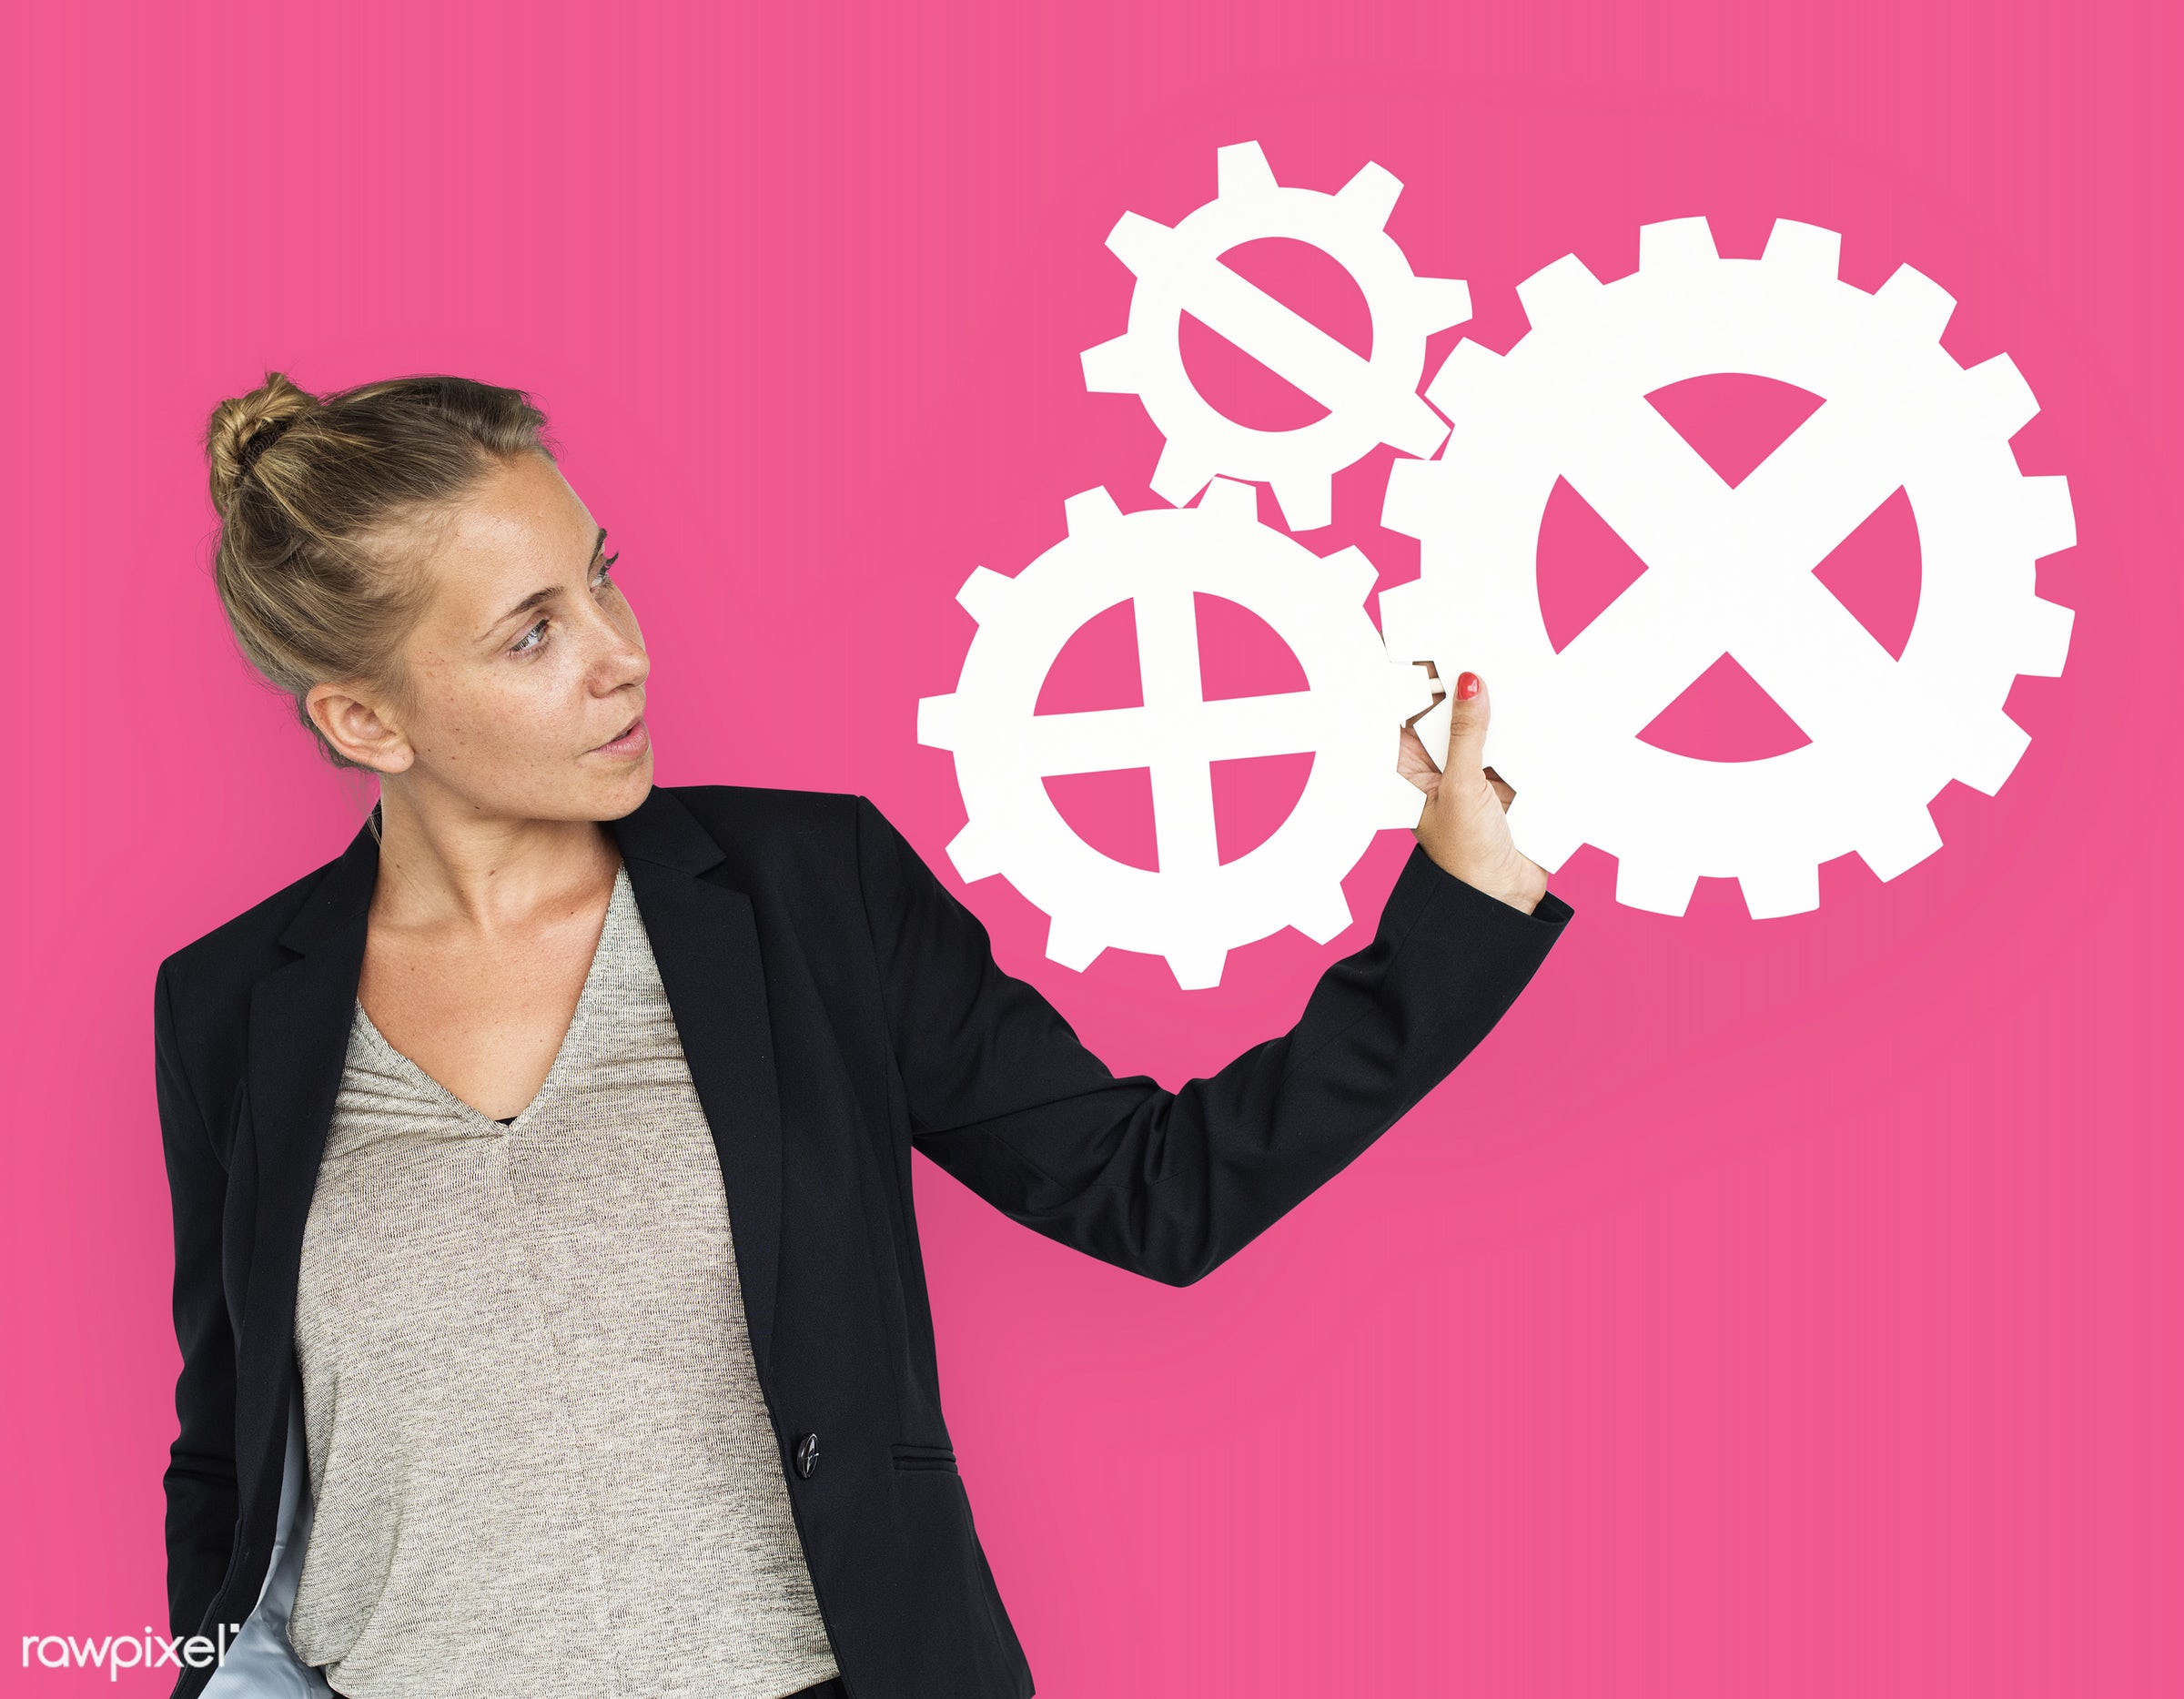 studio, expression, progress, person, holding, people, teamwork, gear, woman, pink, isolated, connection, symbol, engine,...